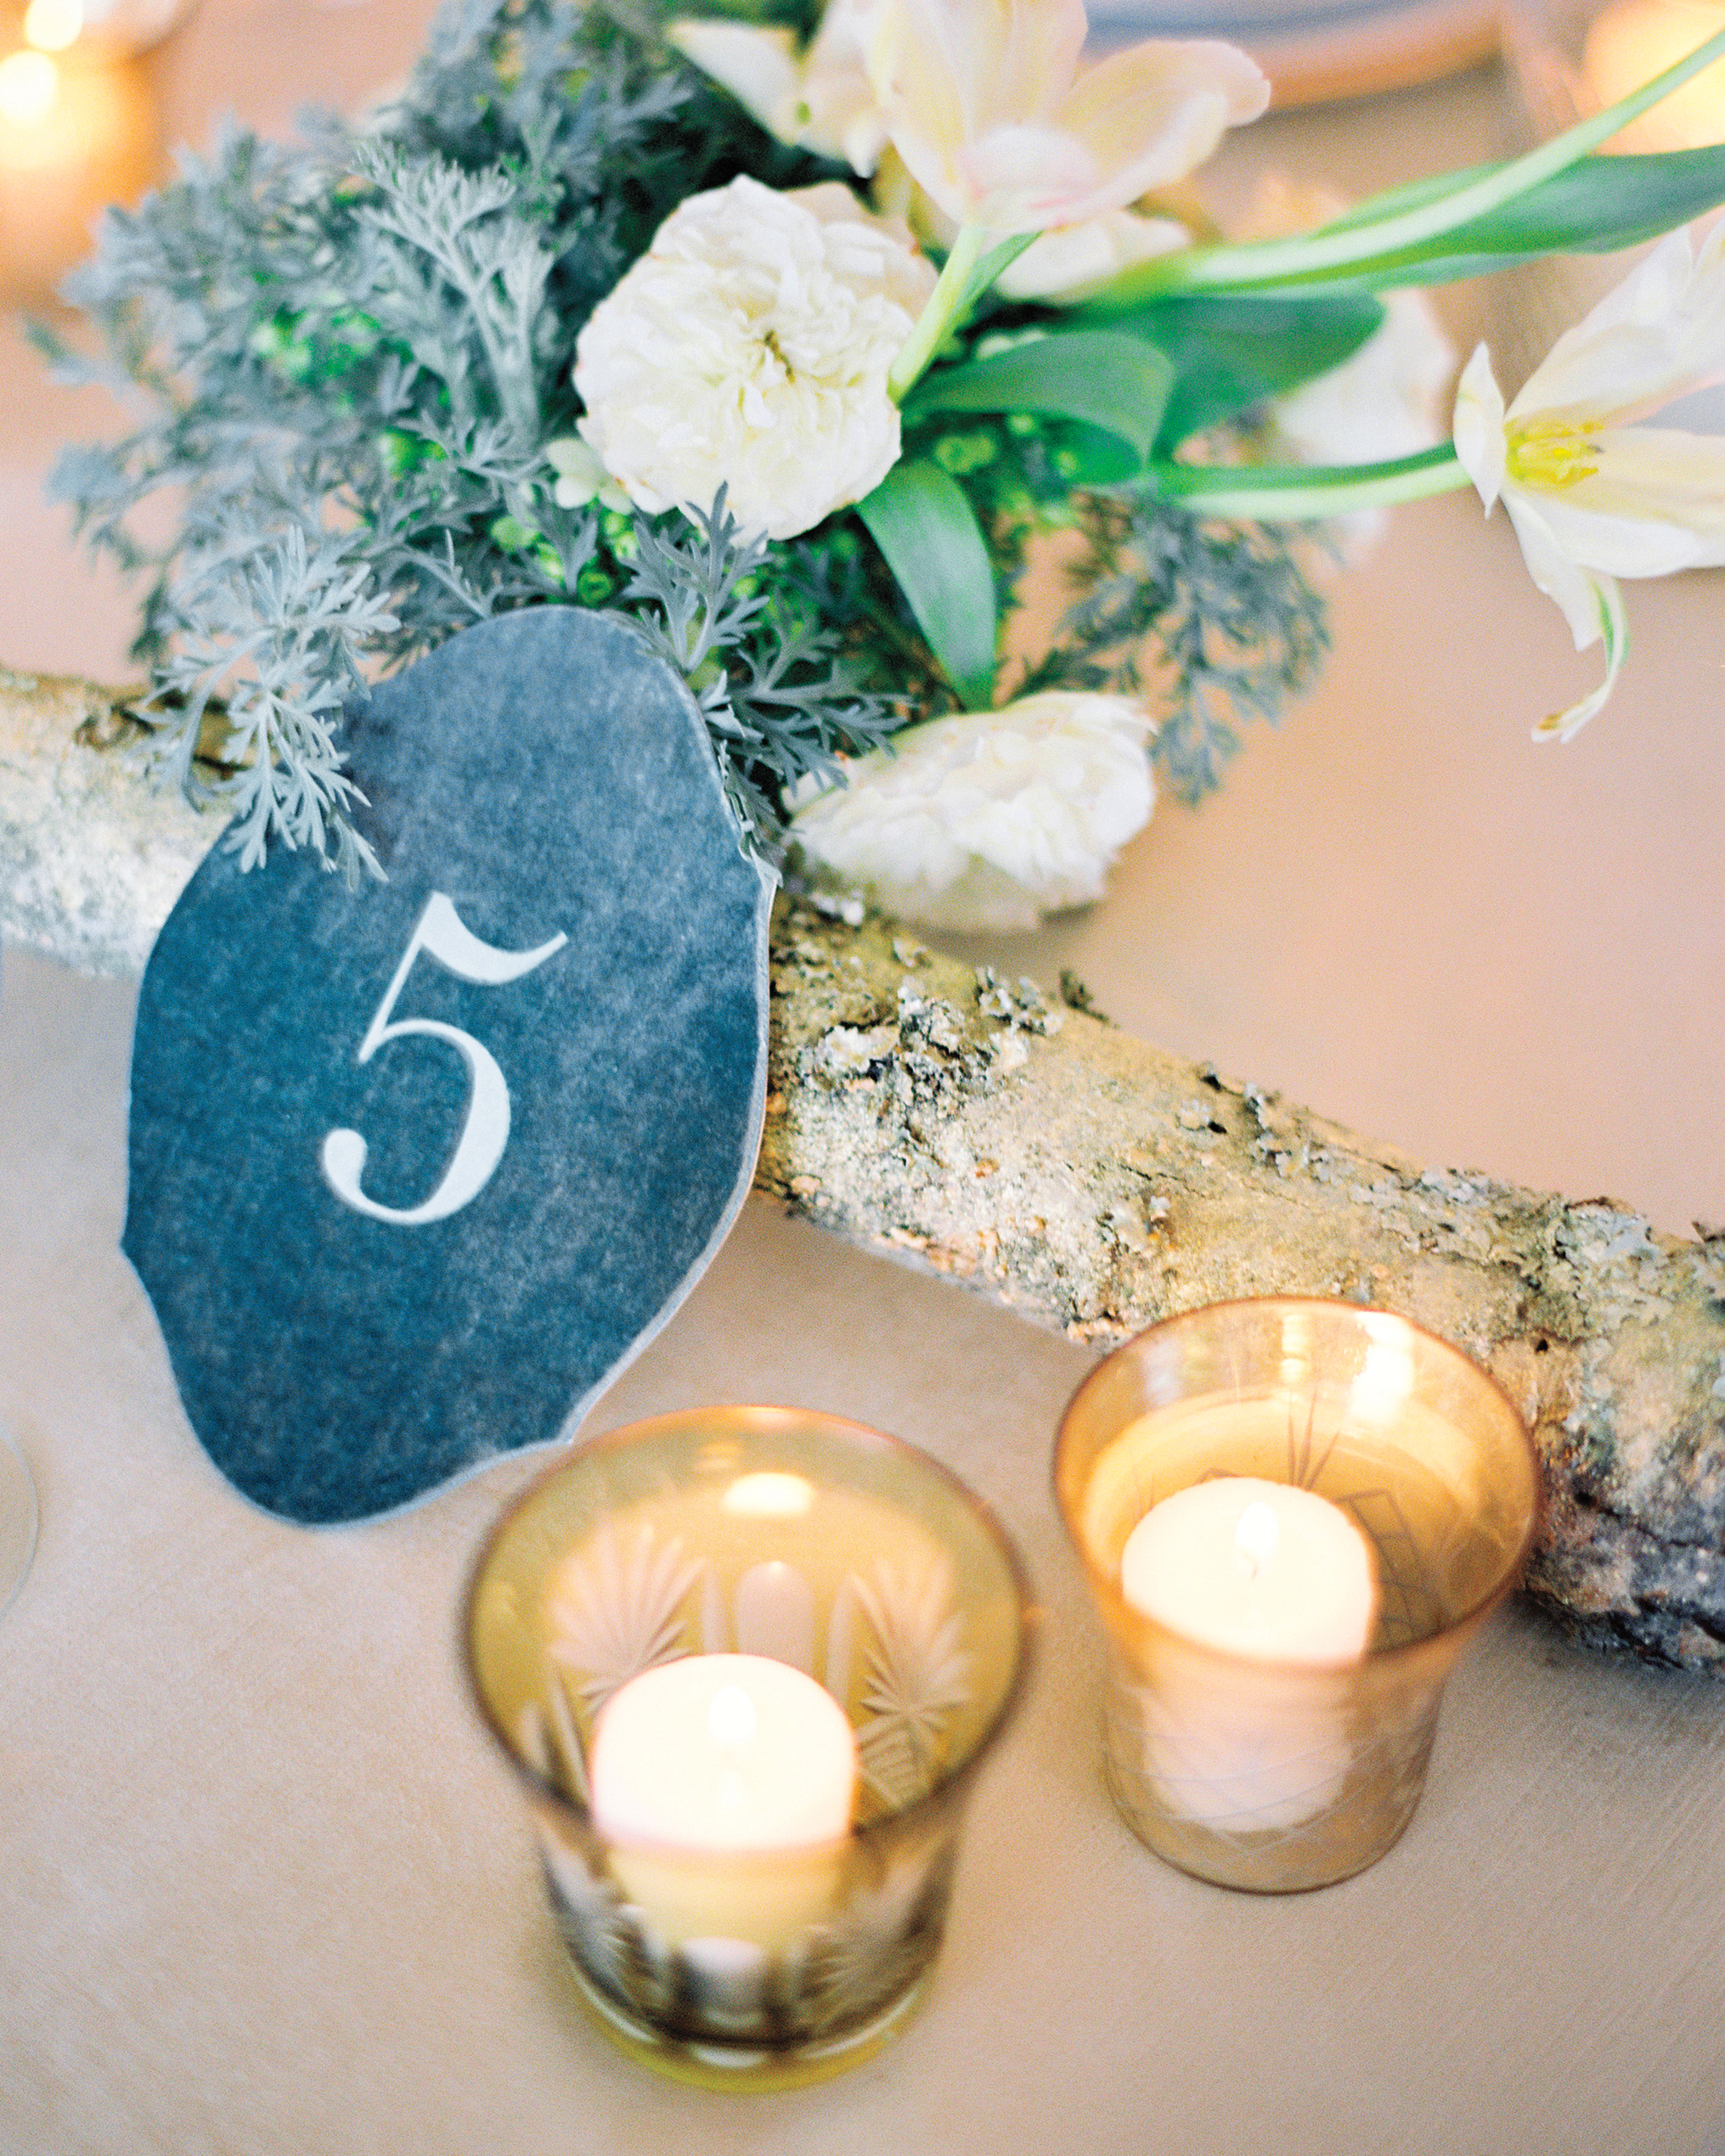 table-number-votive-candle-004793-r-1-002-mwds110148.jpg